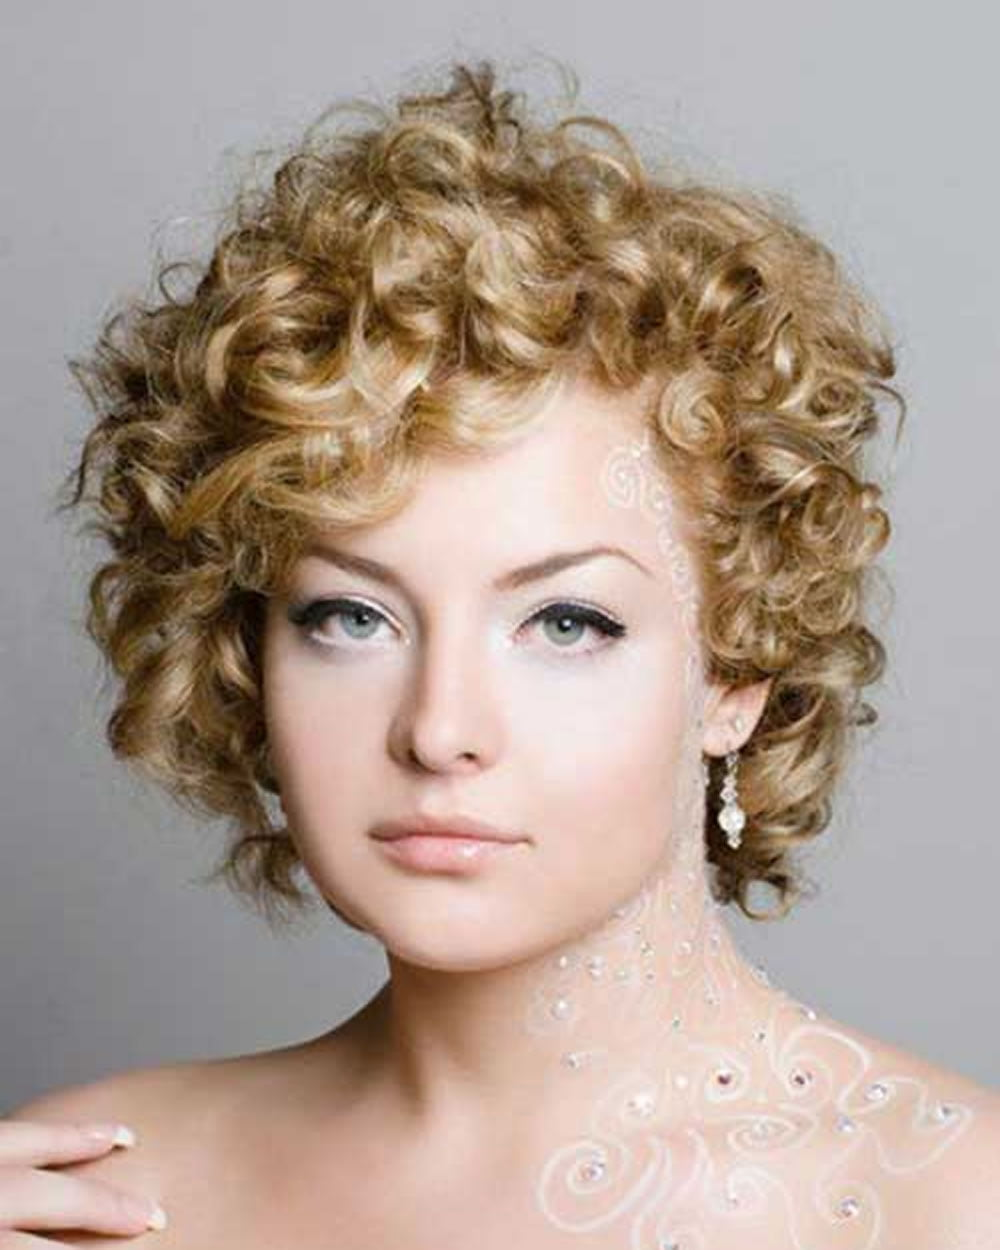 2018 Permed Hairstyles for Short Hair - Best 32 Curly ...